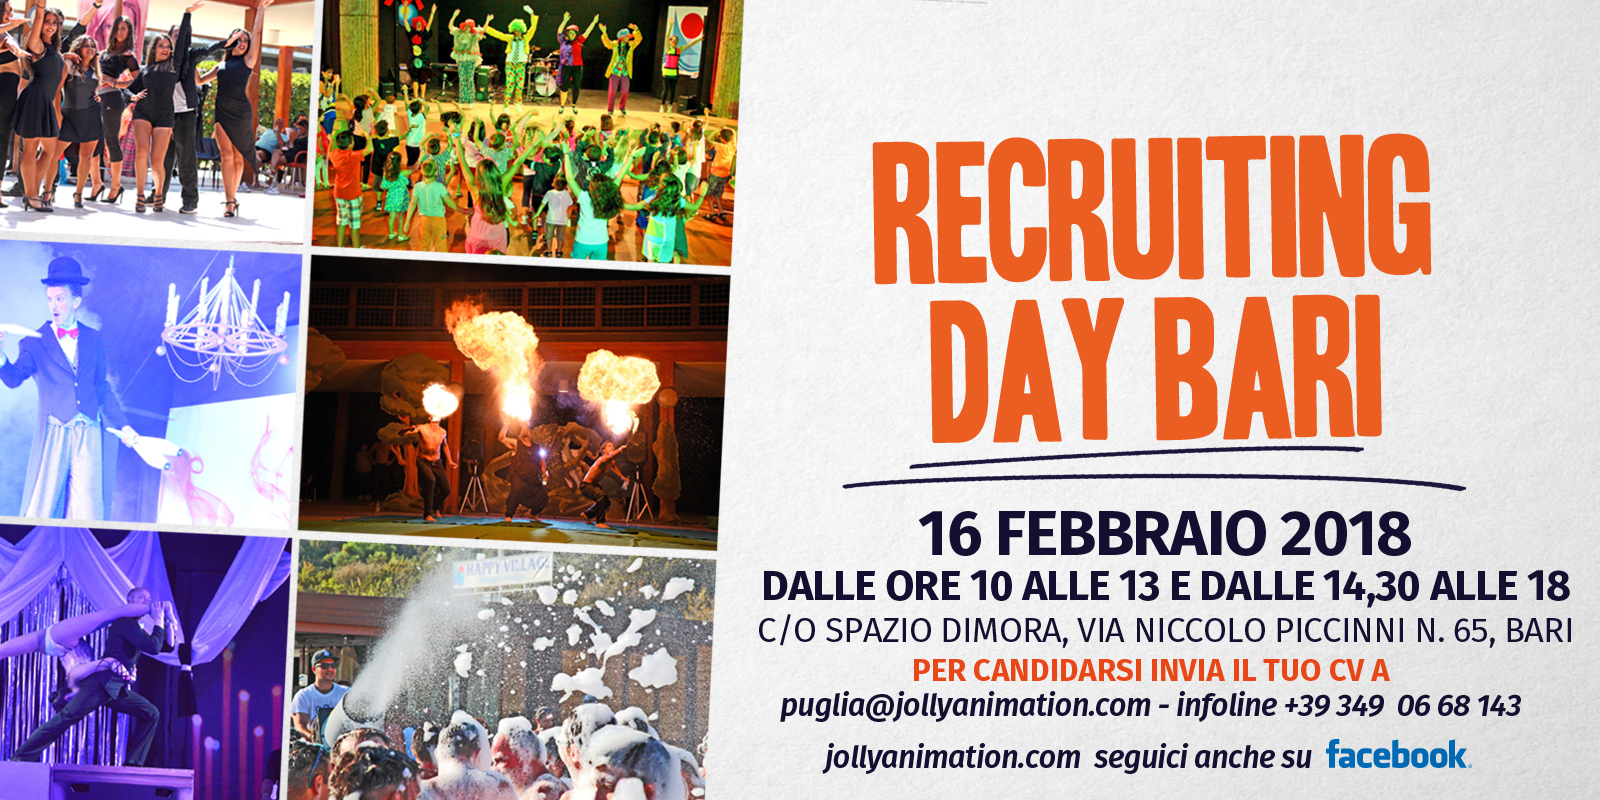 Due giorni al recruiting day di Bari per animatori turistici